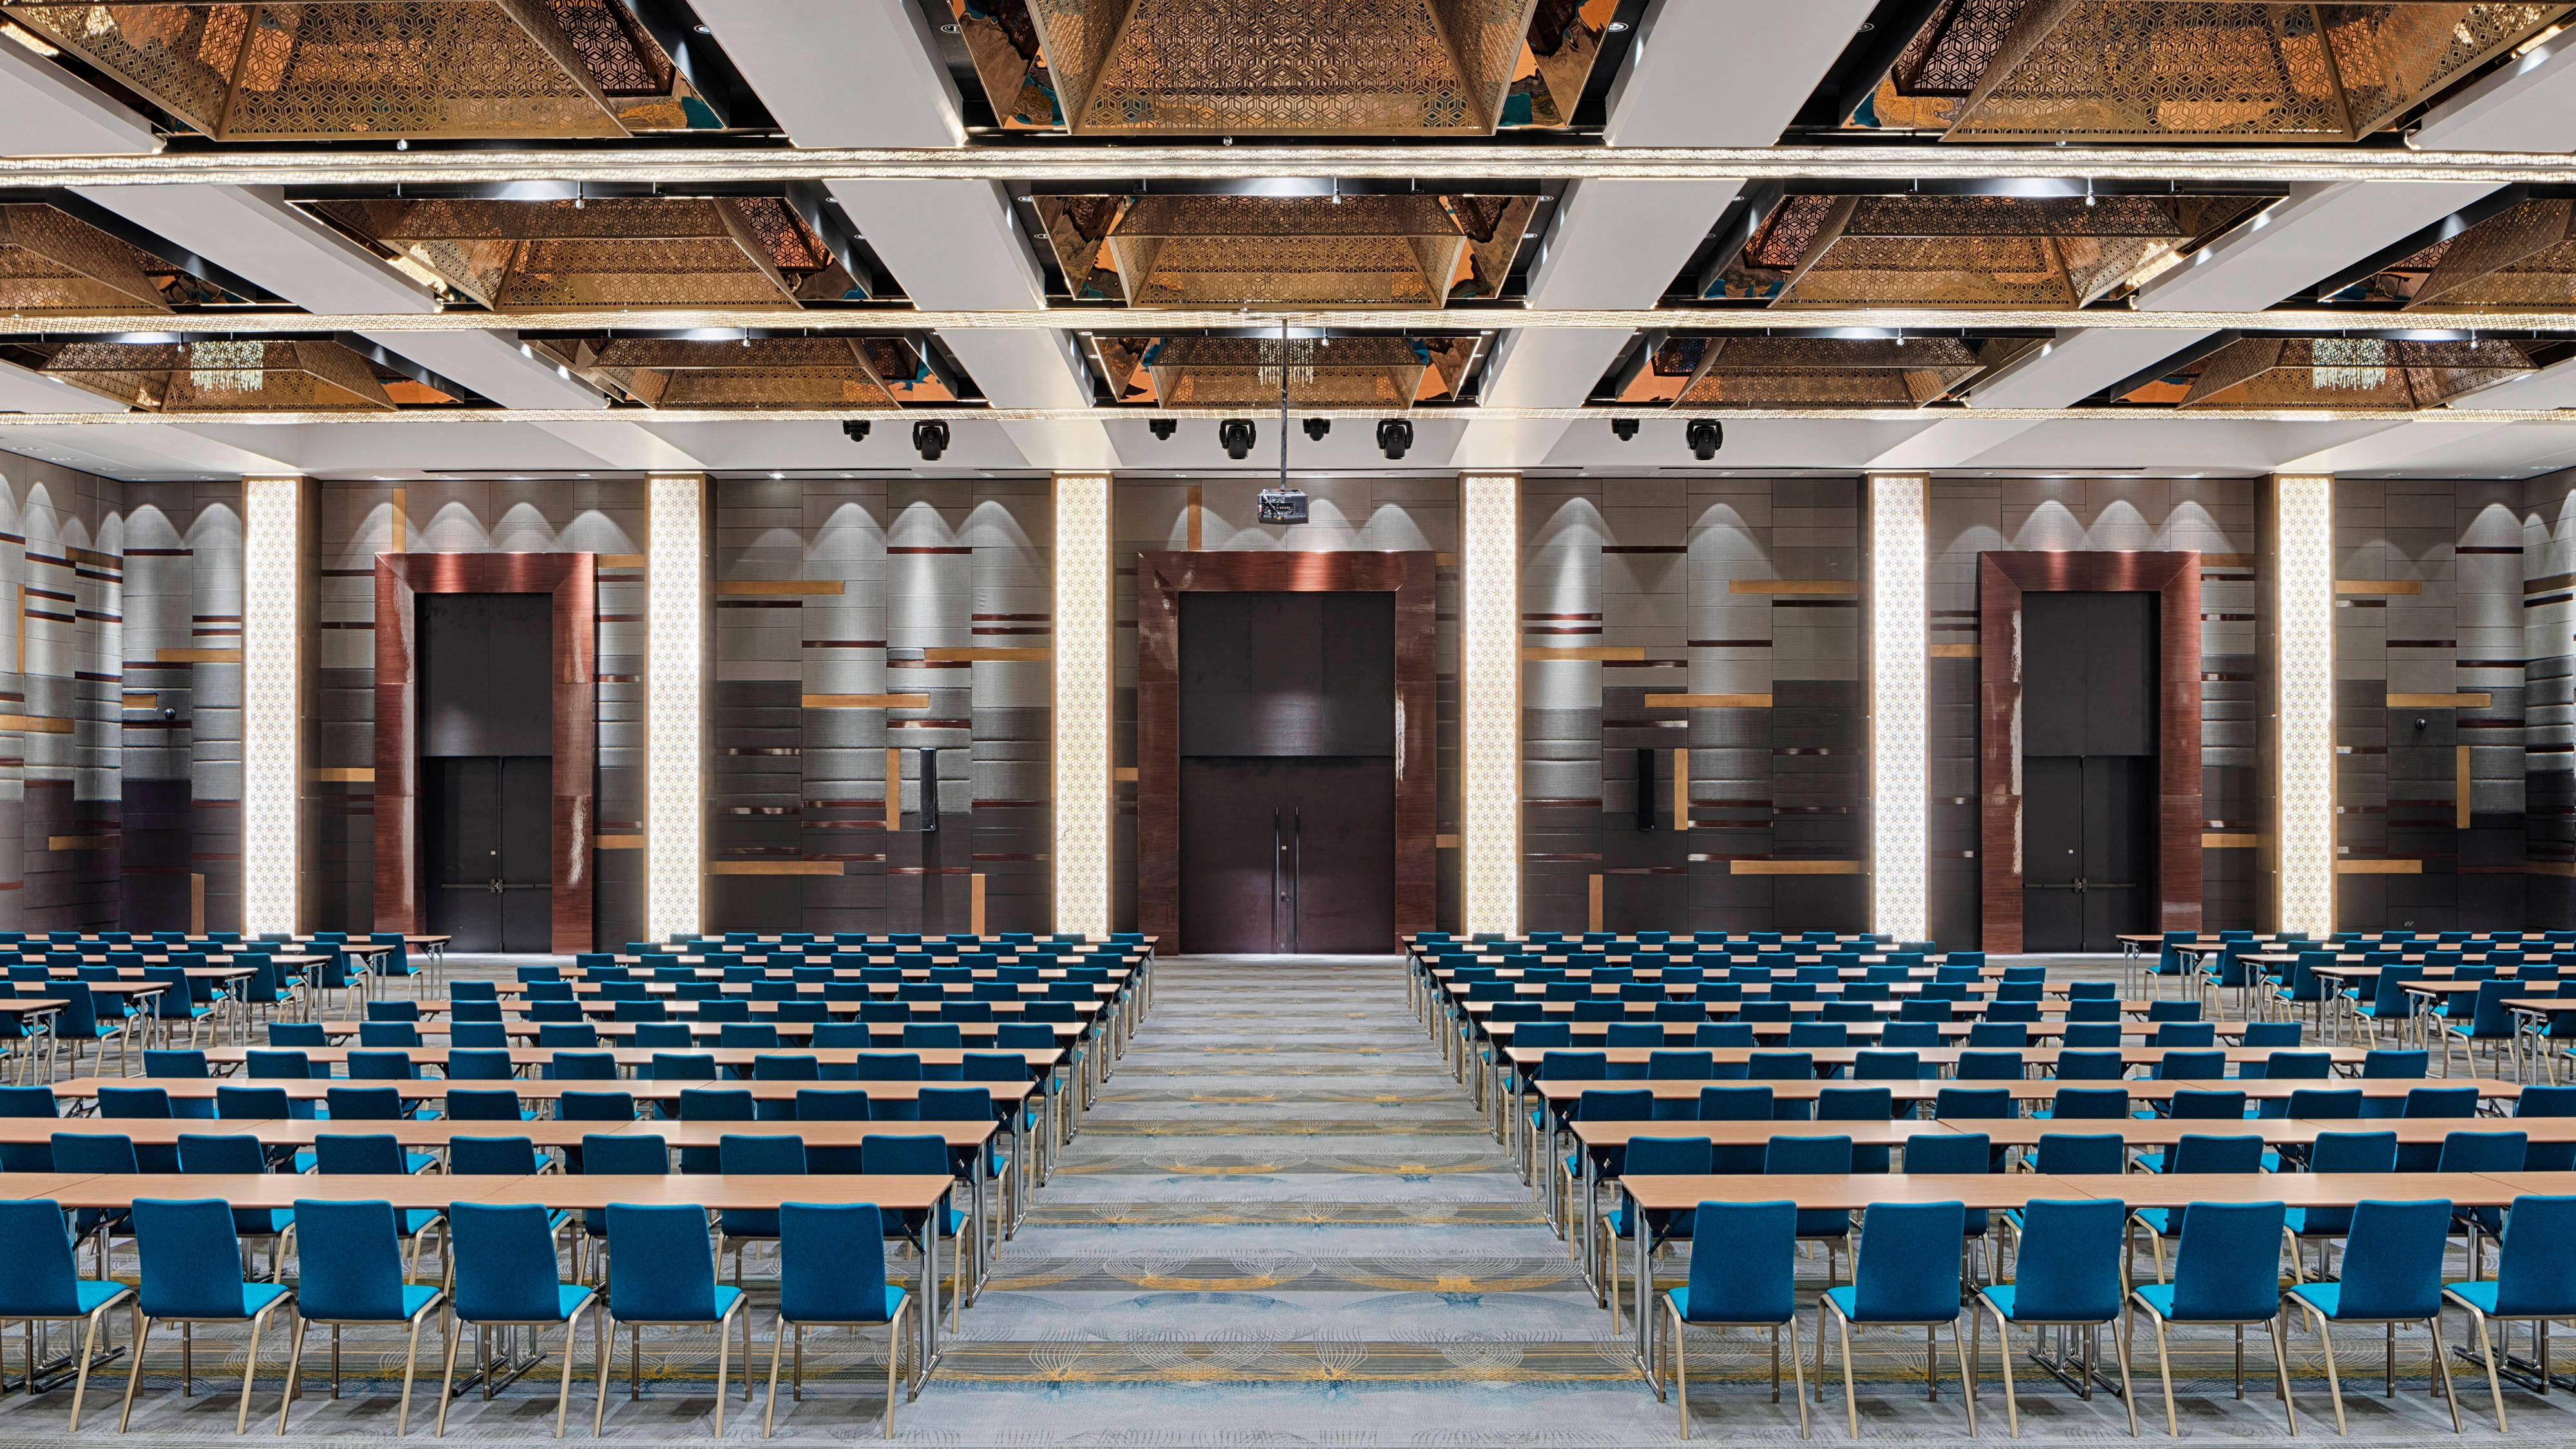 The Westin Grand Ballroom at The Westin Doha Hotel & Spa is the second largest in Doha, lending itself perfectly for private functions, royal weddings or any corporate event.